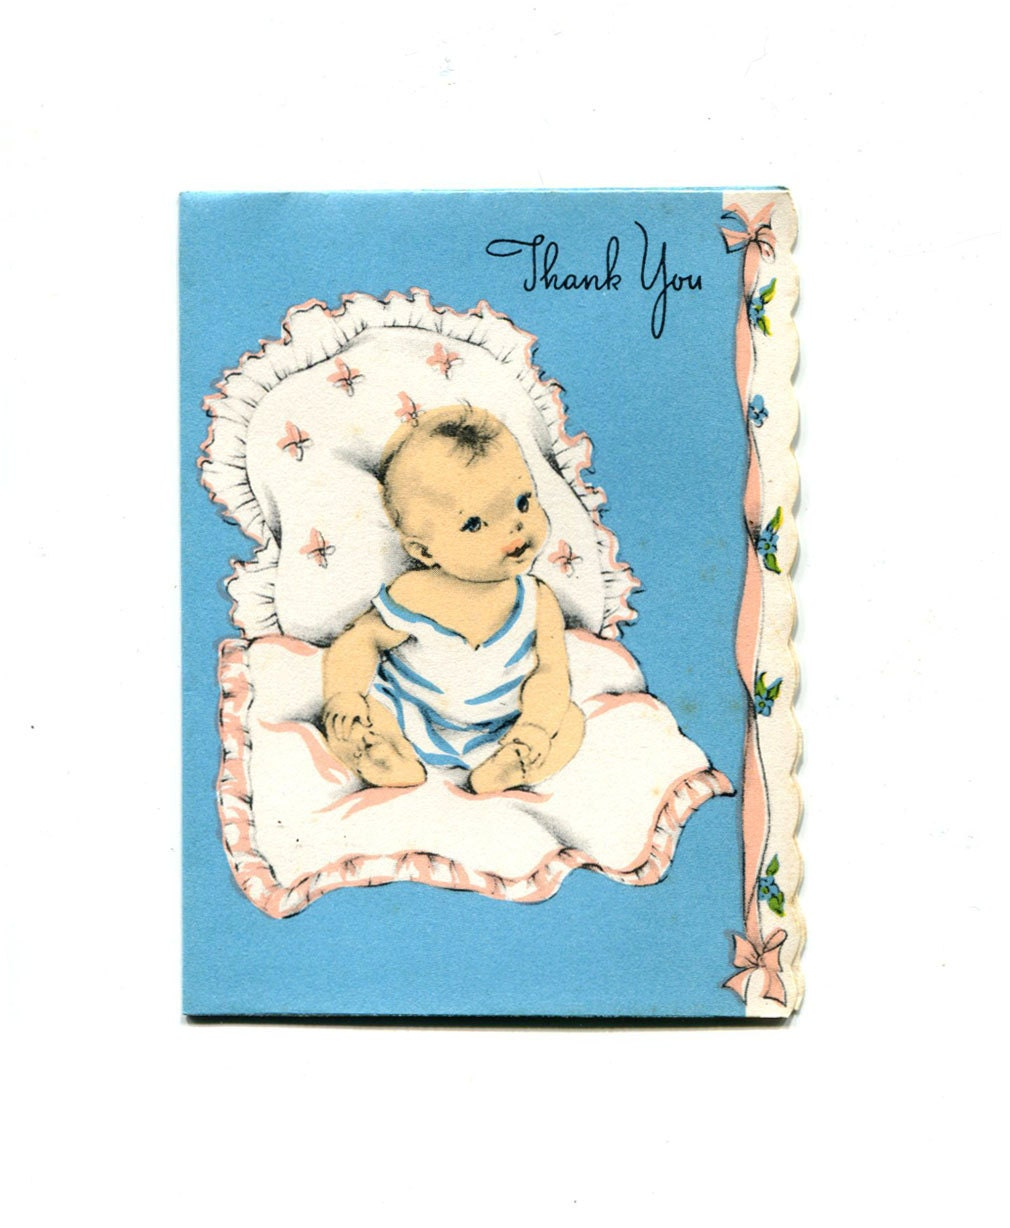 Vintage Baby Shower Thank You Cards: 10 Unused Vintage Baby Shower Thank You Card 1950s With